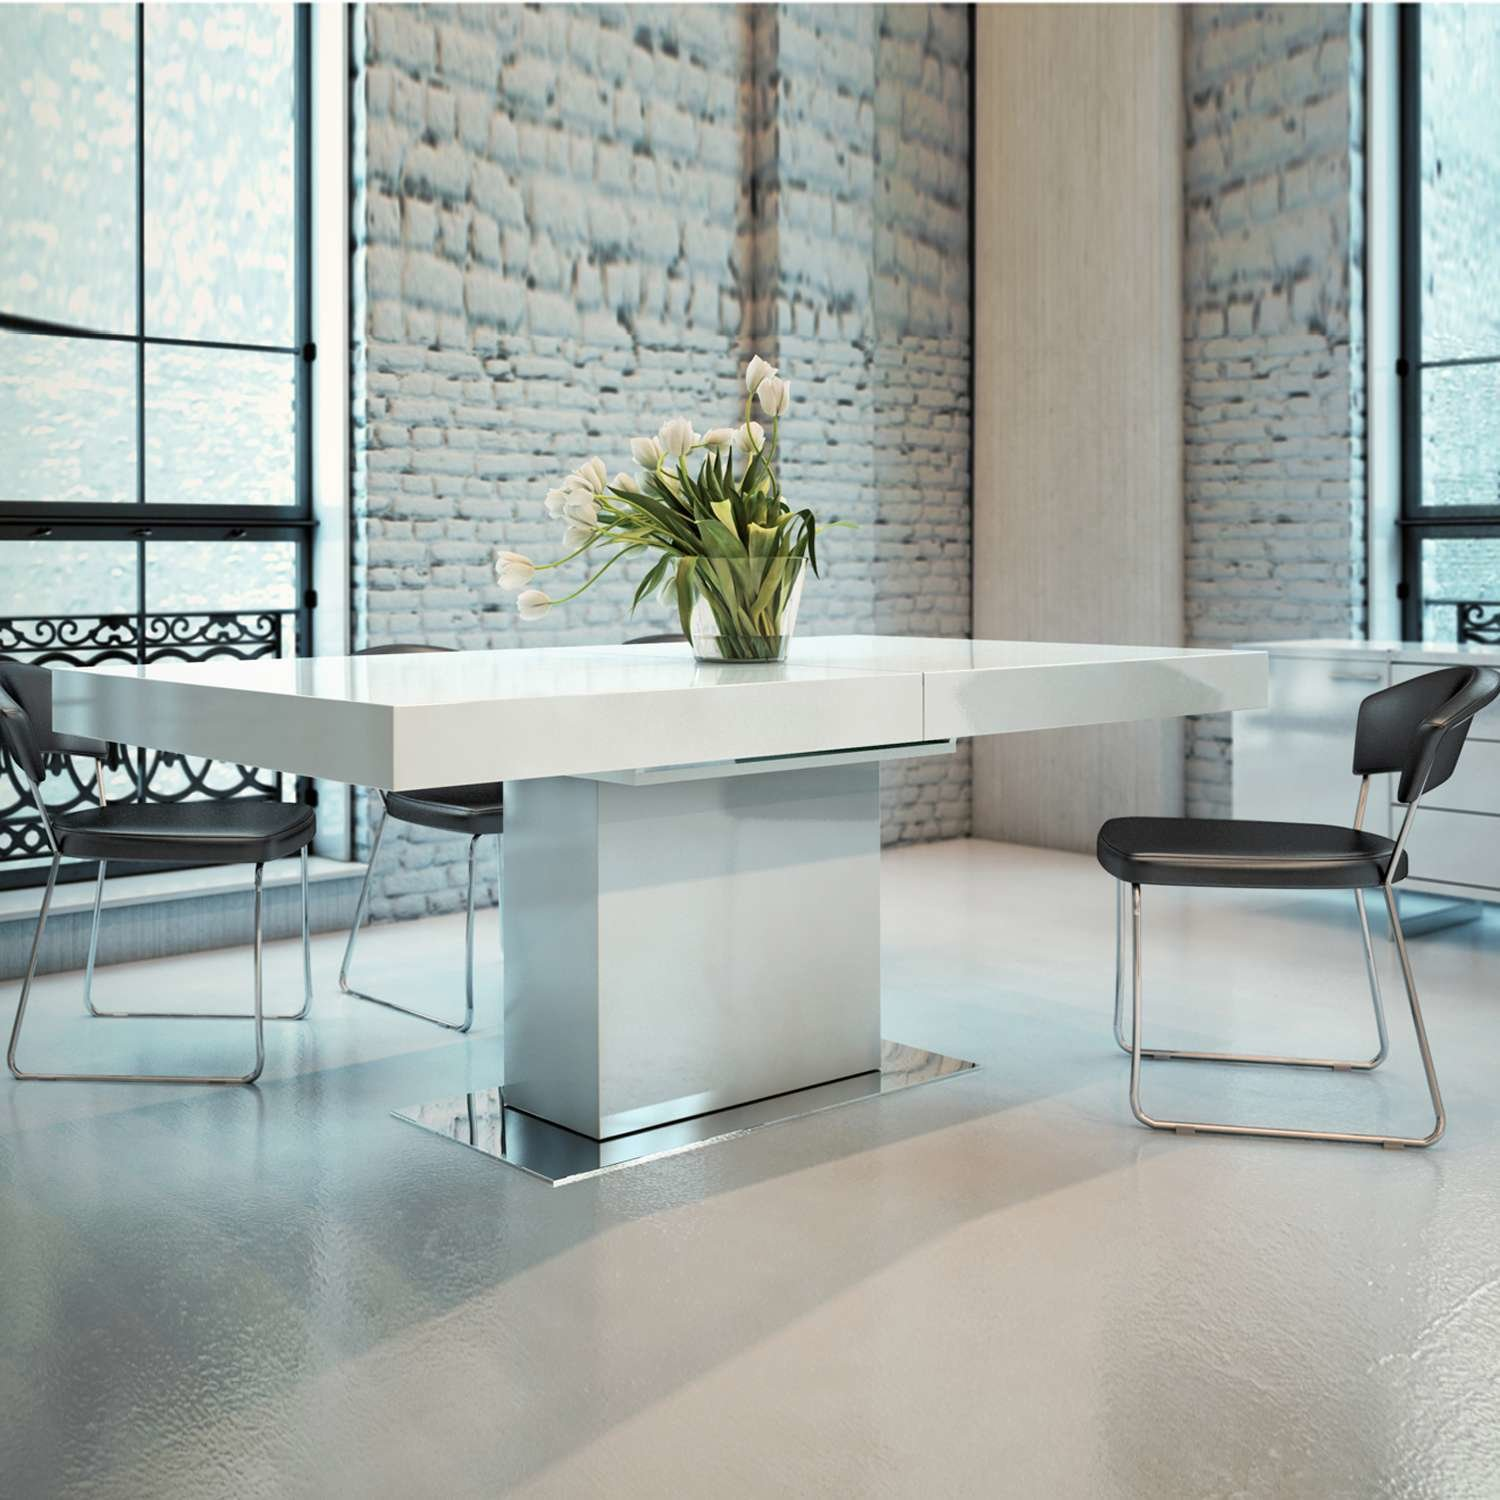 Astor Dining Table from Modloft by YLiving - Dwell